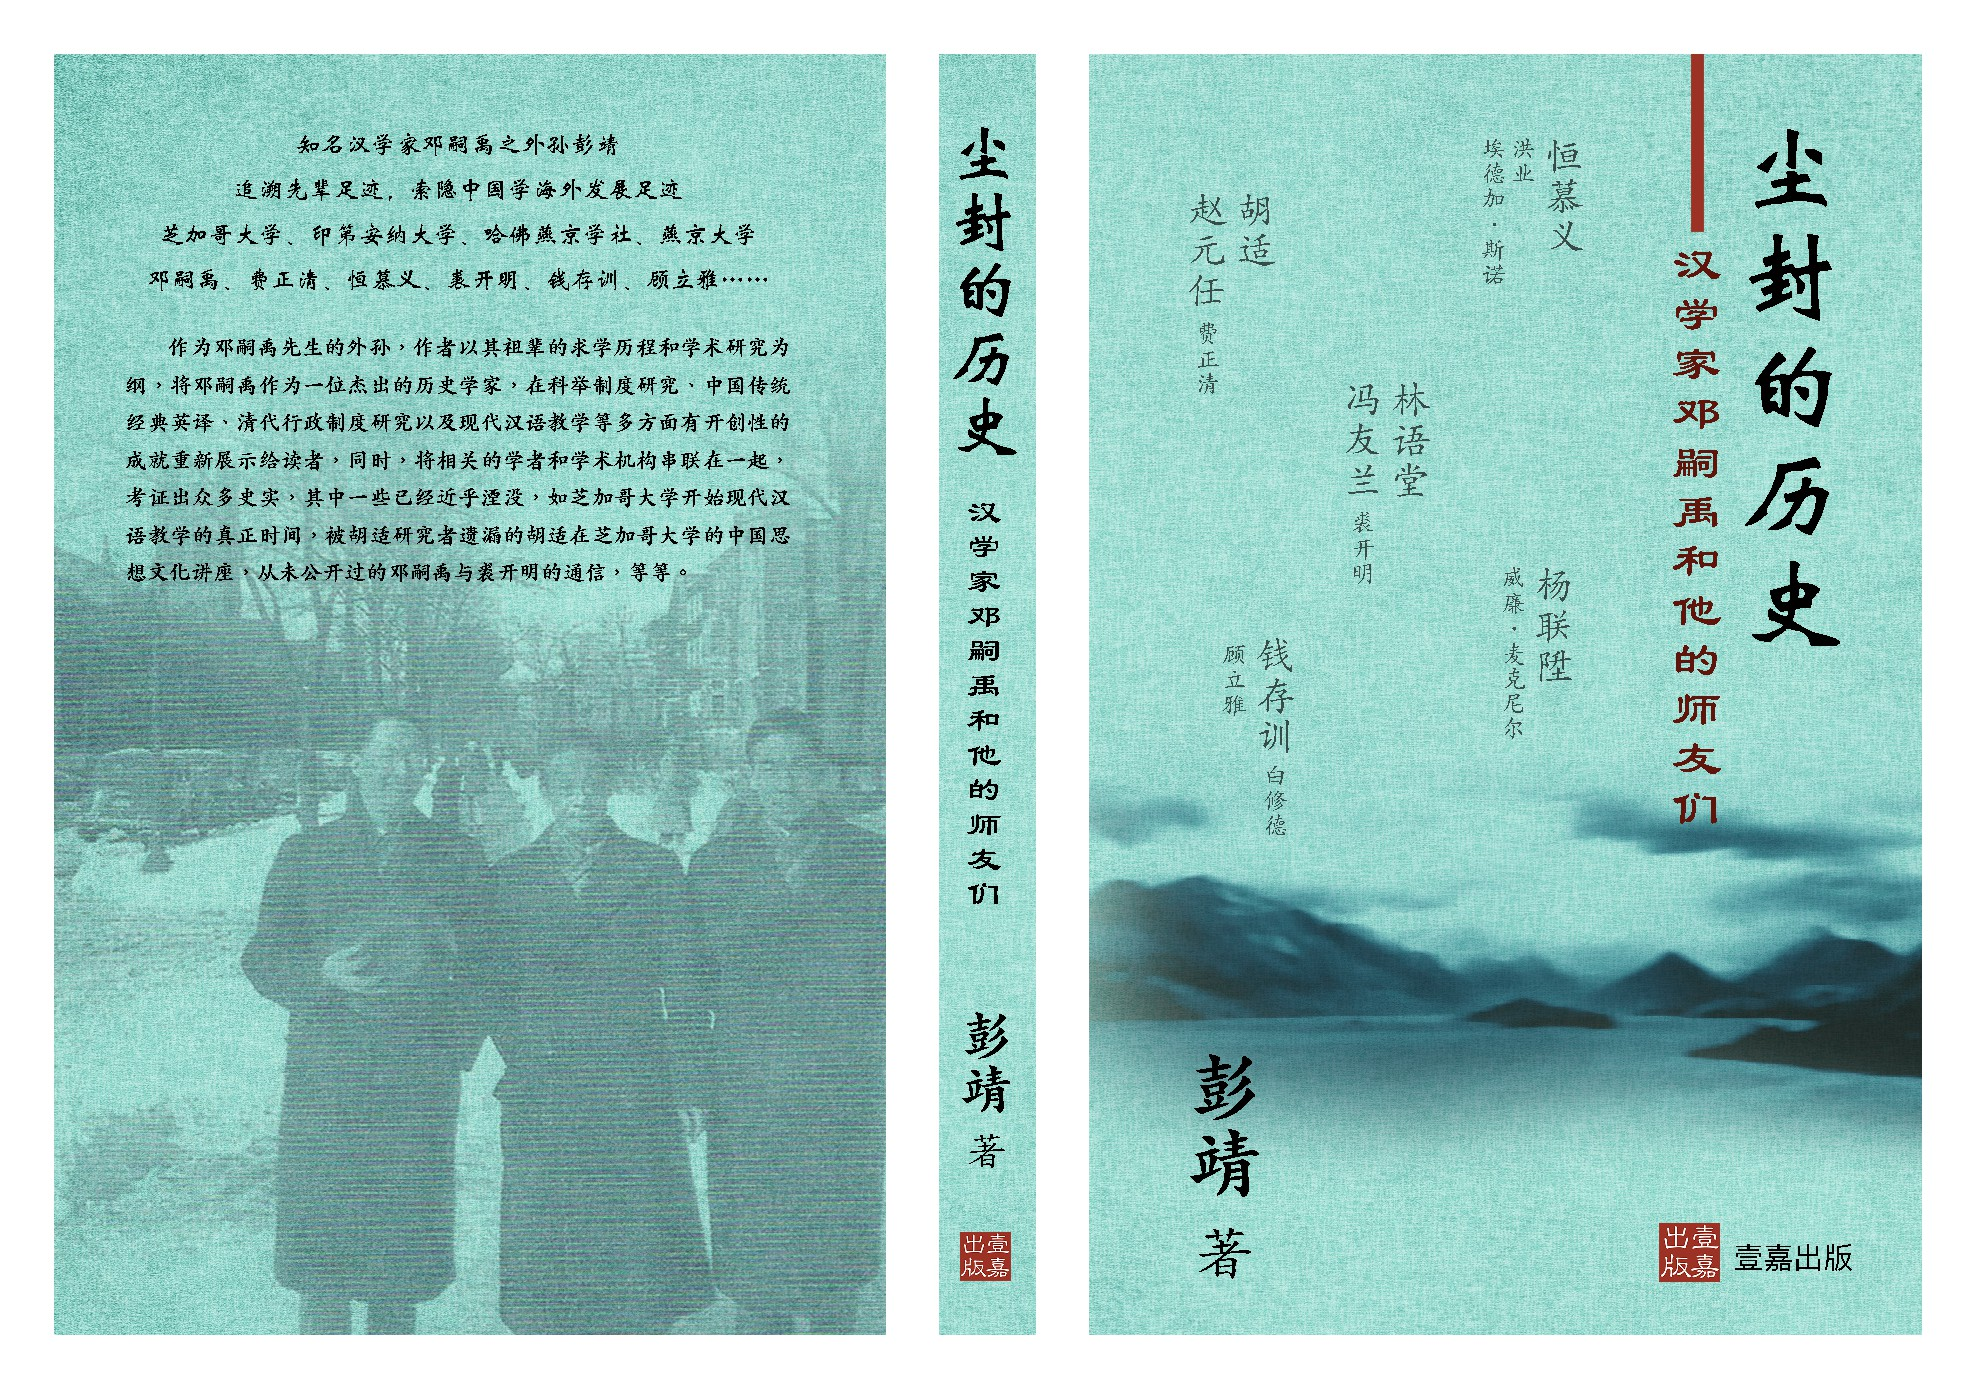 a book about historians/sinologists needs a cover!